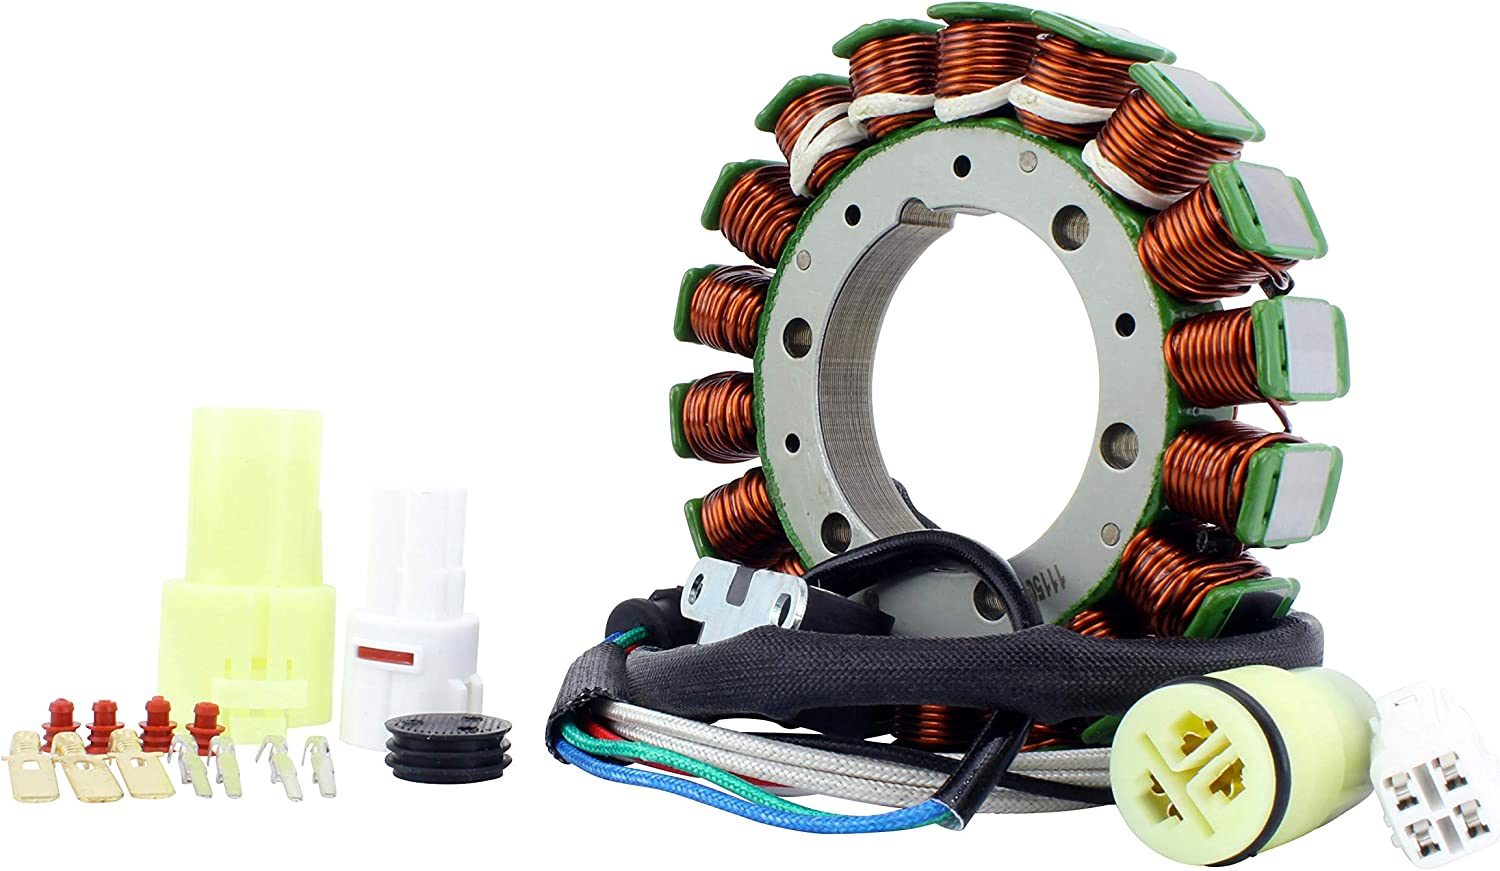 OEM Repl.# 5KM-81410-00-00 5KM-81410-01-00 HO Stator for Yamaha YFM 350 Grizzly 2007-2014 Wolverine 2006-2009 5UH-81410-00-00 Bruin 2004-2006 YFM 660 Grizzly 2002-2008